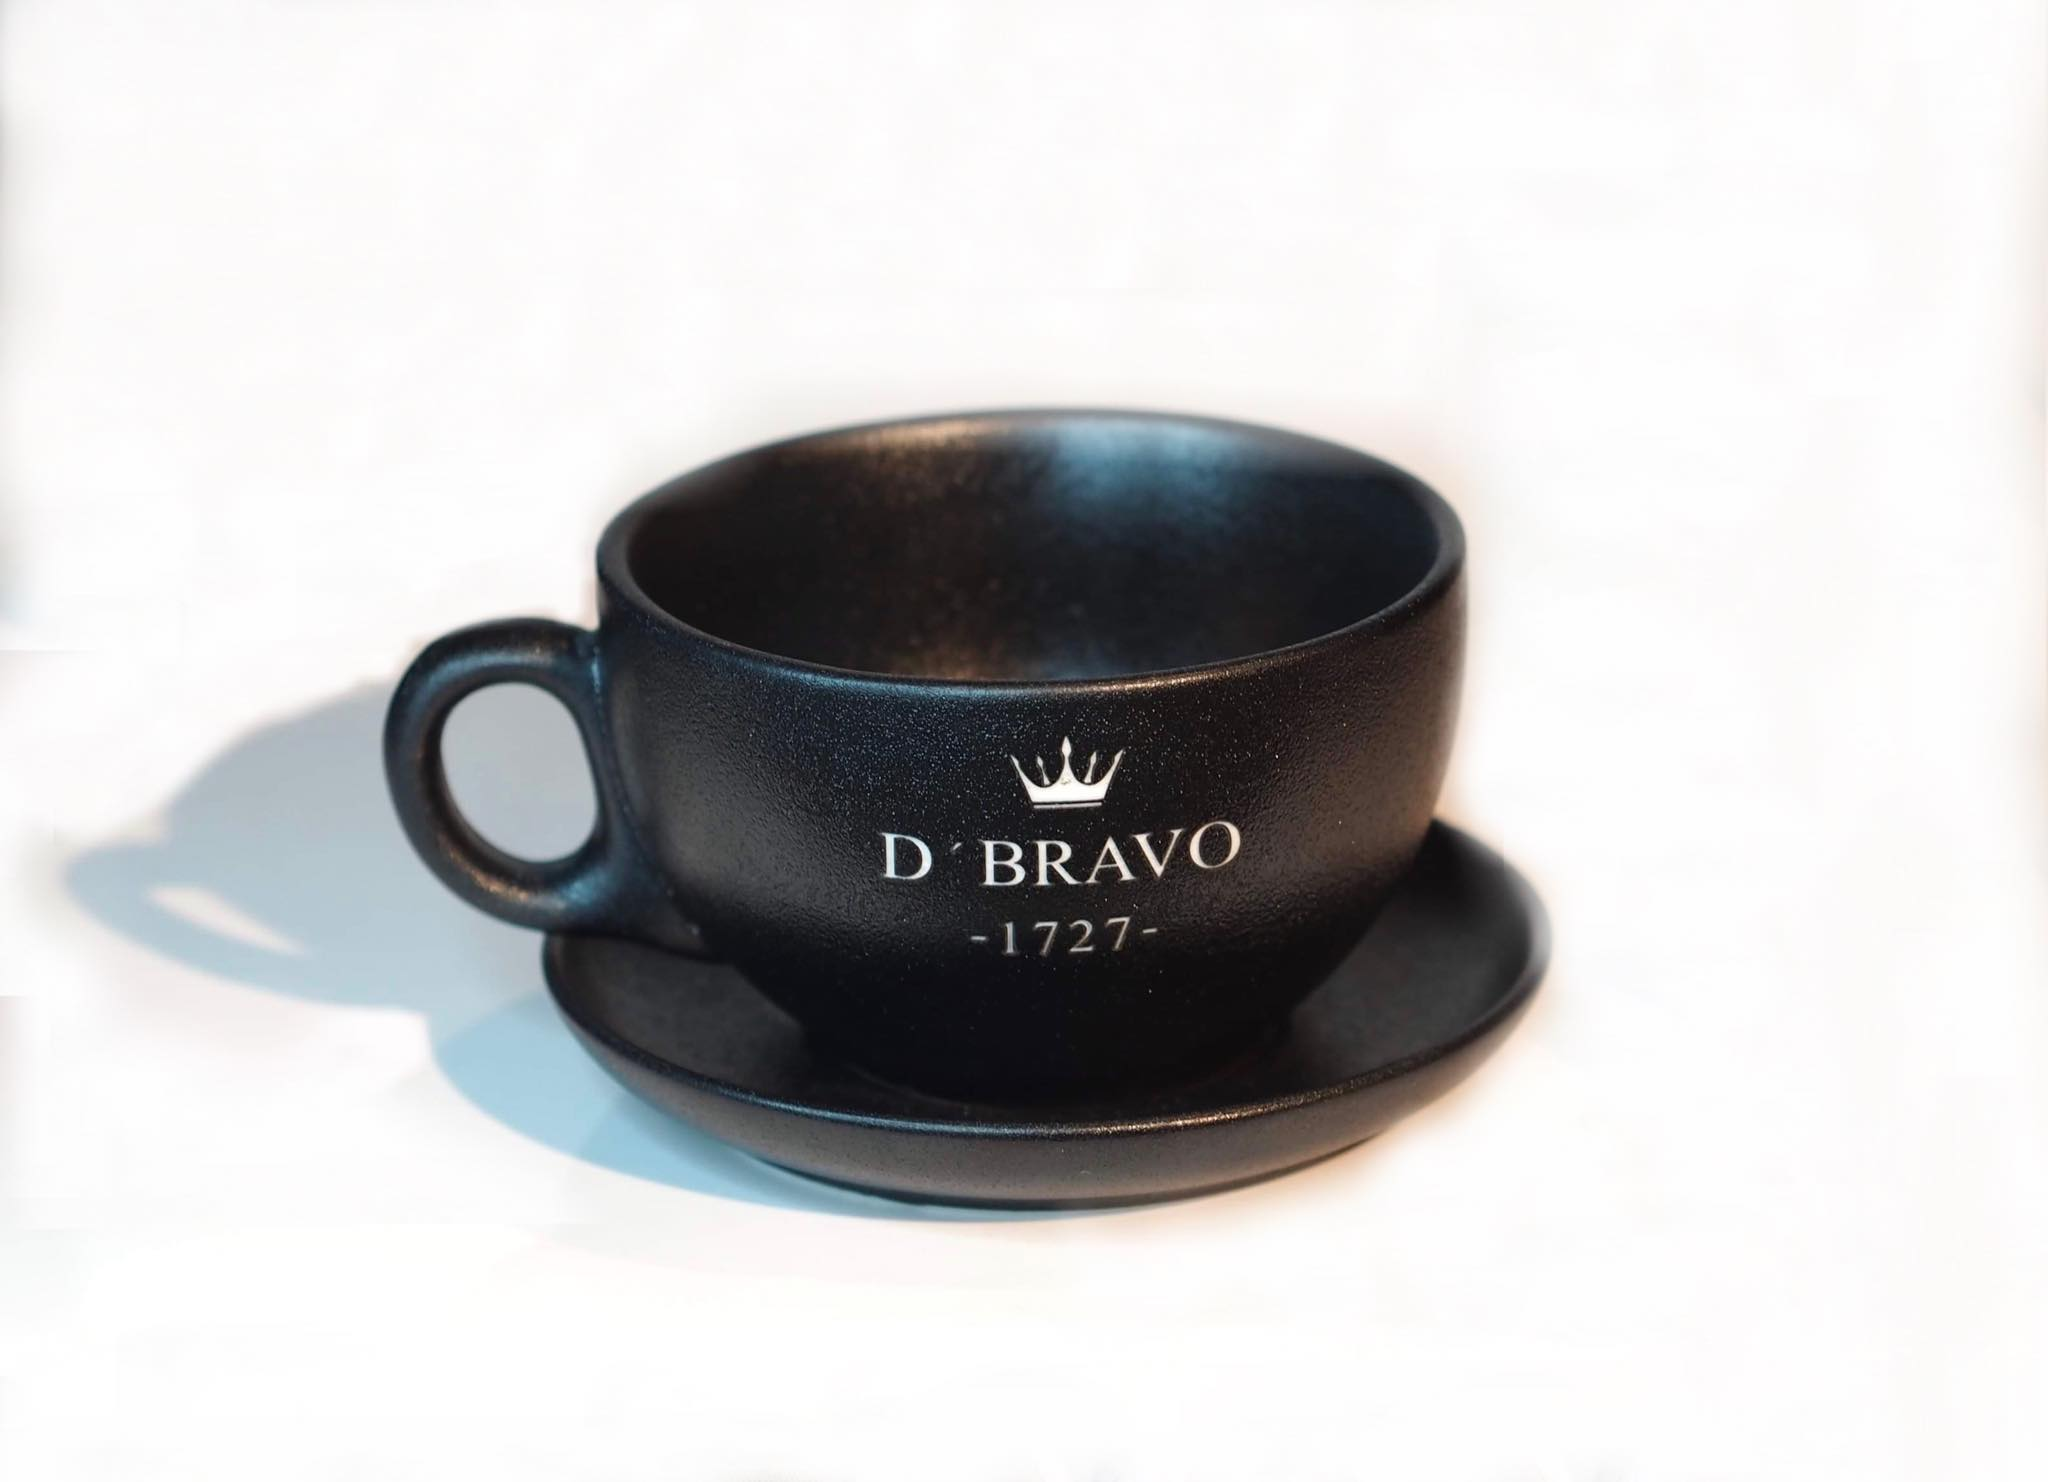 D'Bravo Special Limited-Edition Set